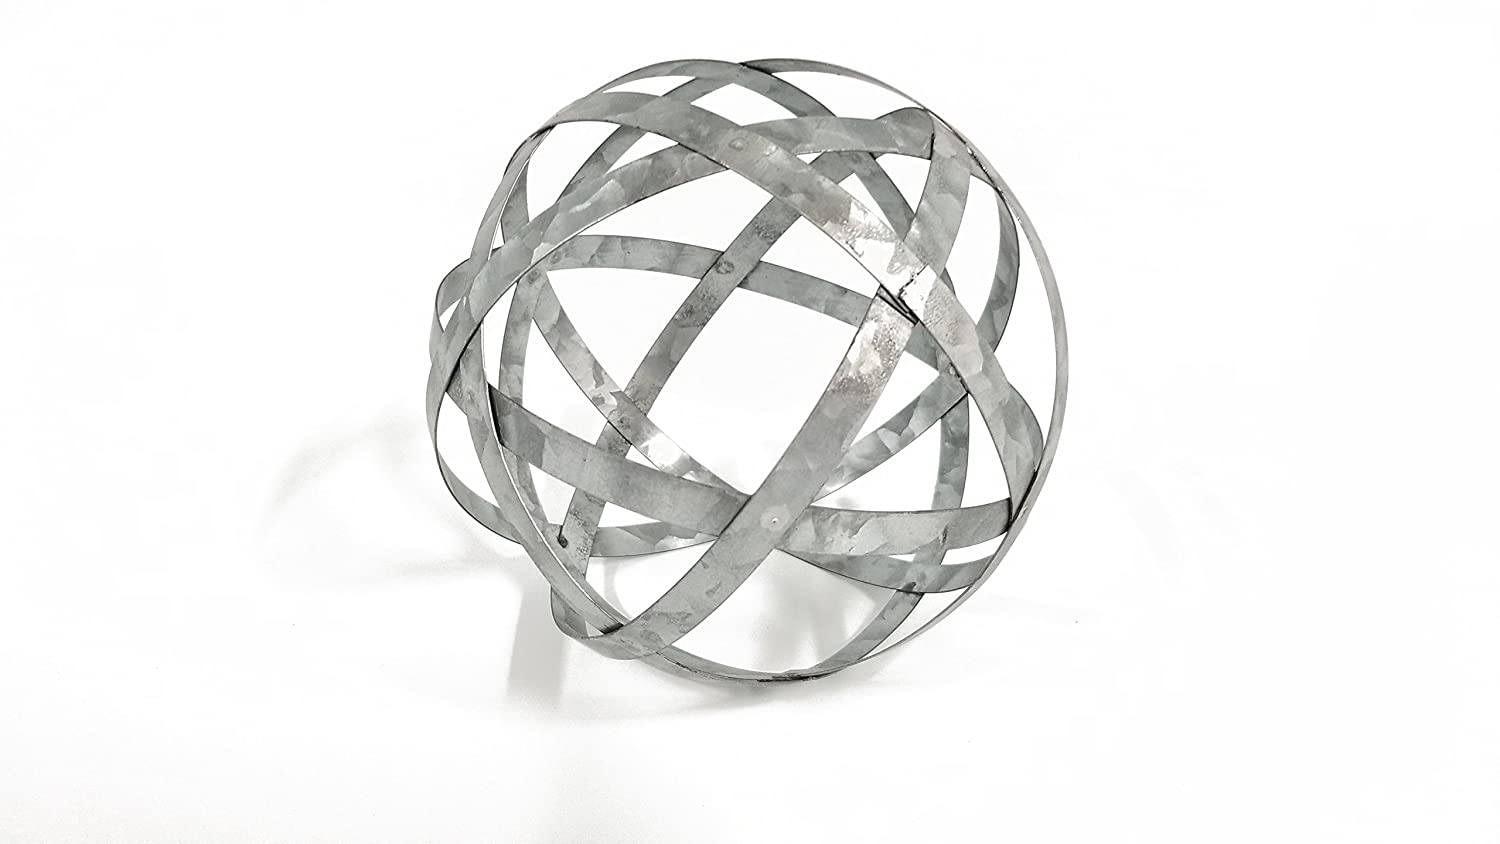 Medium Galvanized Metal Band Decorative Sphere